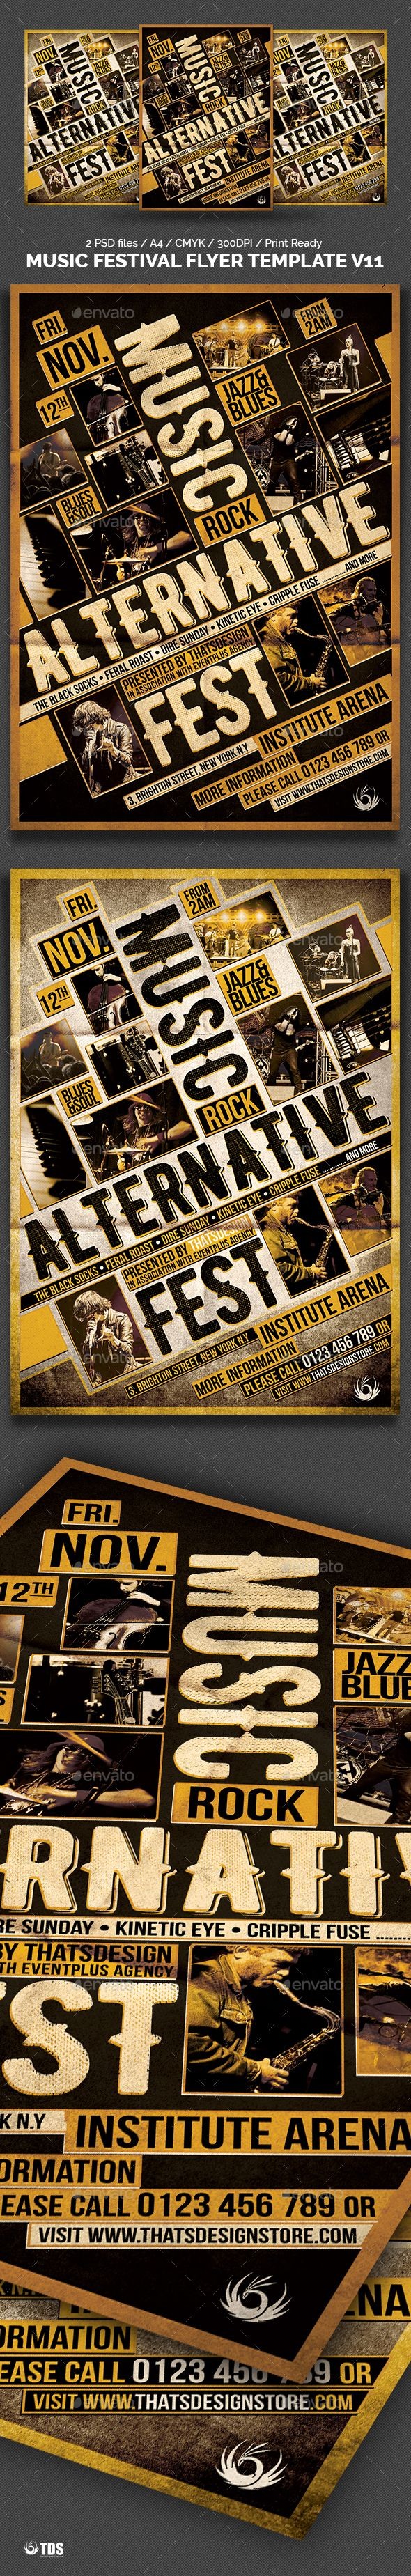 Music Festival Flyer Template V11 by lou606 2 Photoshop .psd fileA4 size (21Ã…